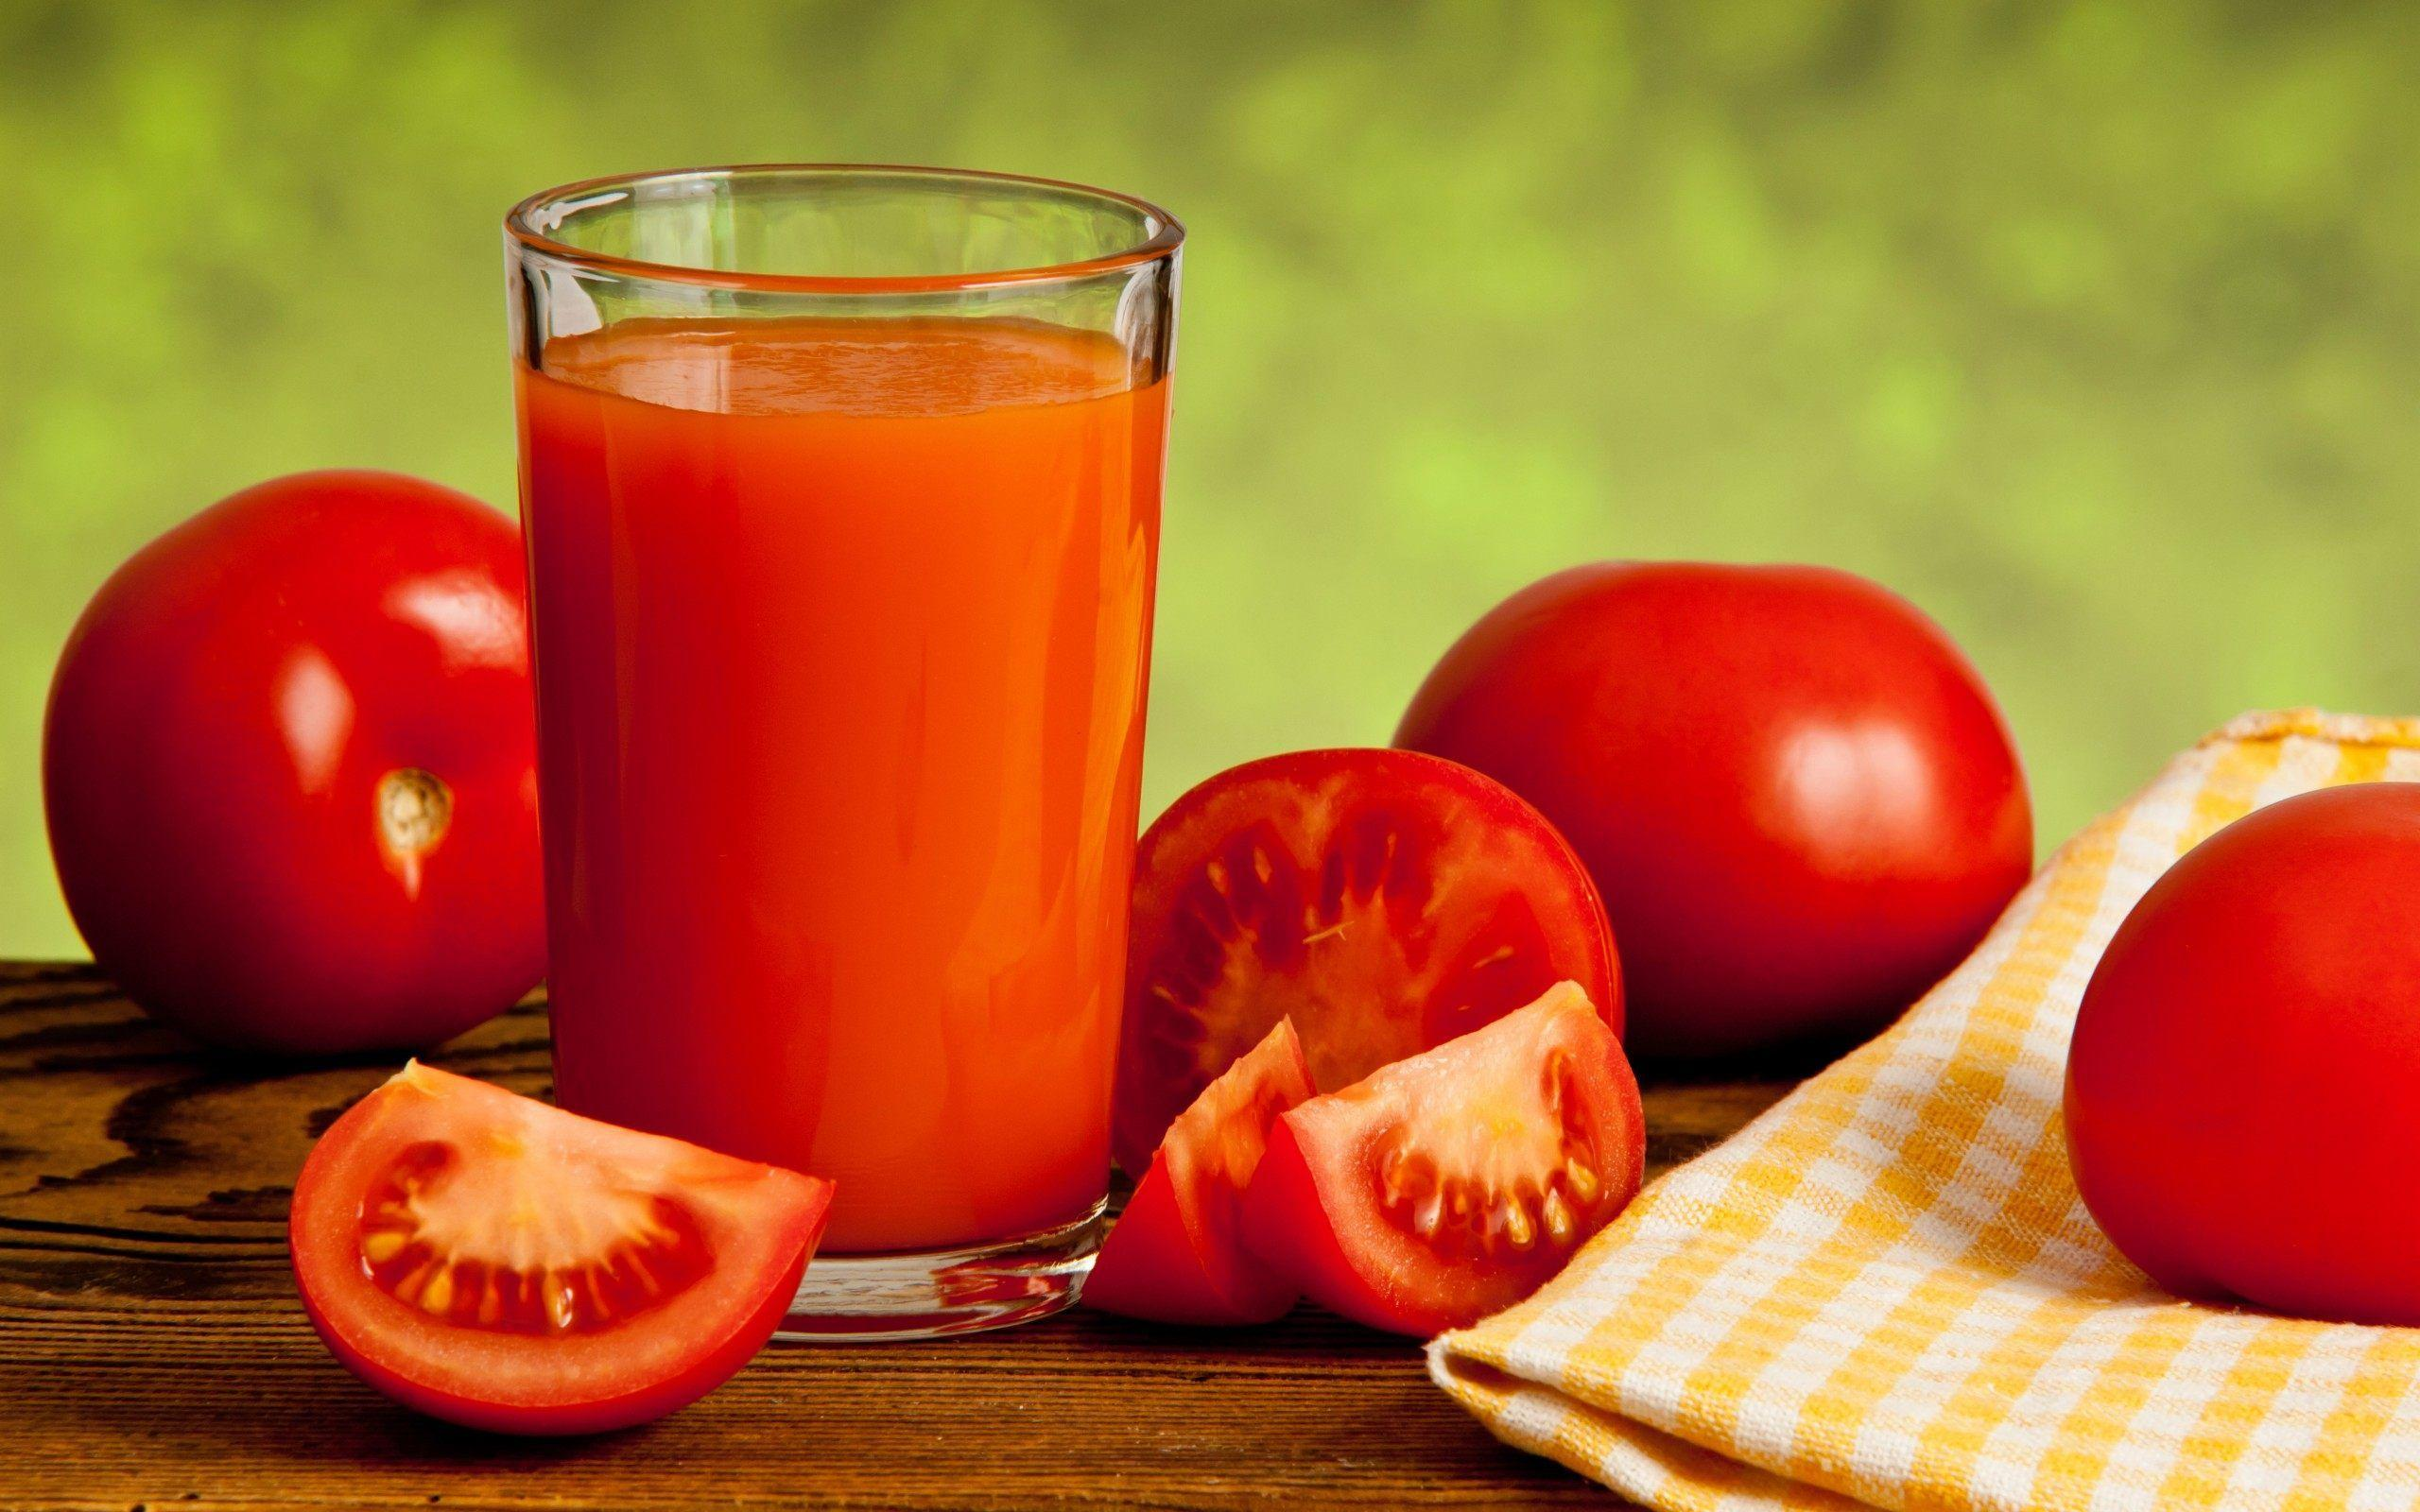 Tomato Juice & Red Tomatoes HD Wallpapers